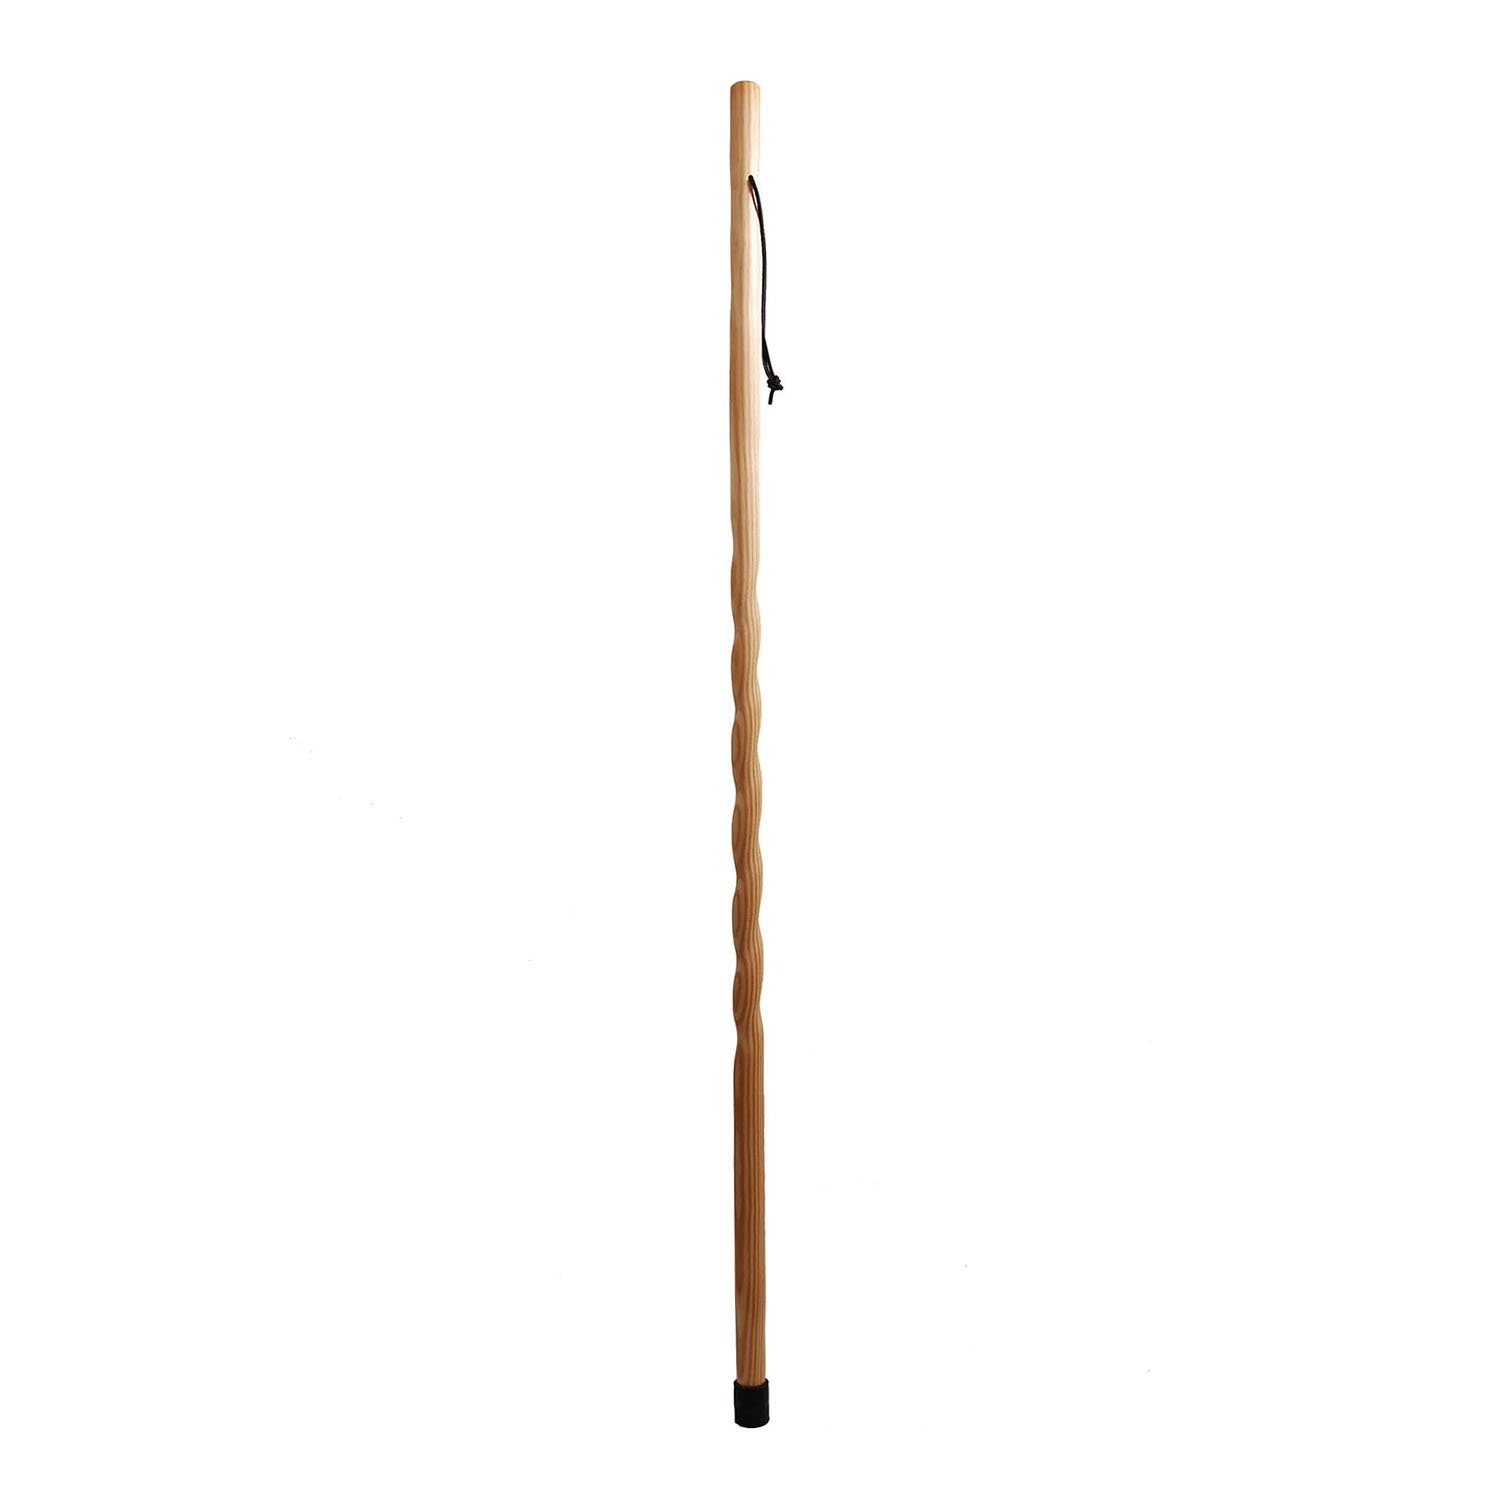 Trail Blazer by Brazos 55'' Twisted Wood Walking Stick, Made in the USA, Natural